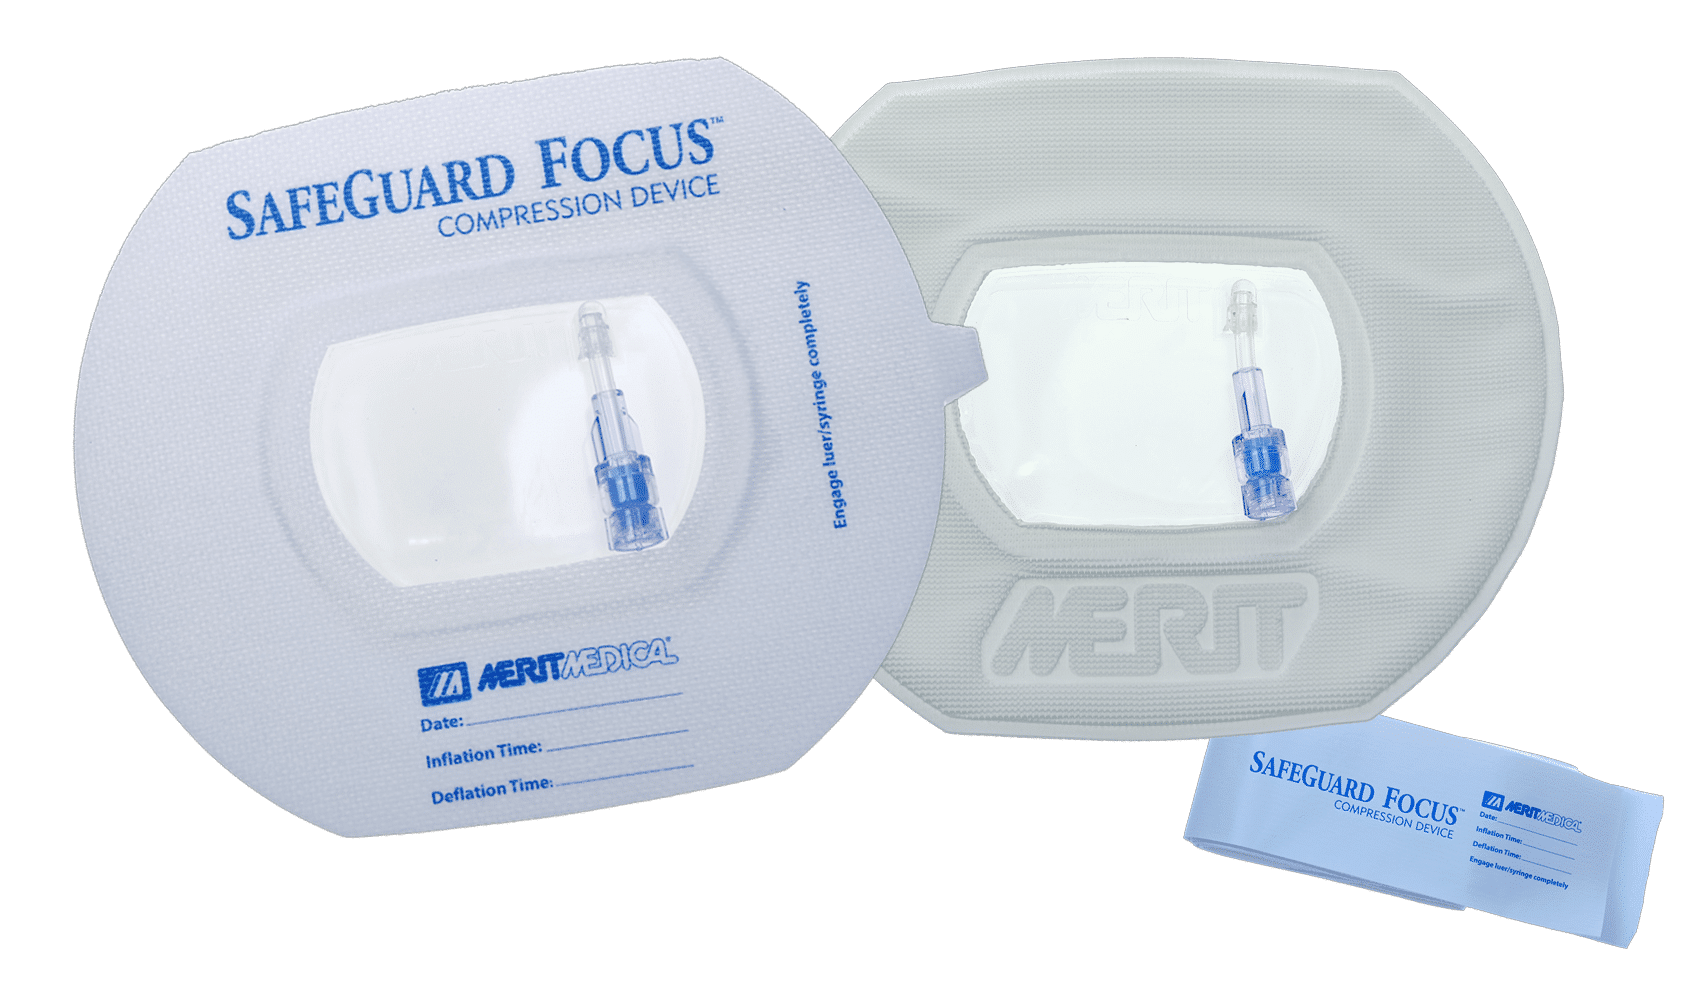 SafeGuard Focus - With and Without Adhesive - Compression Device